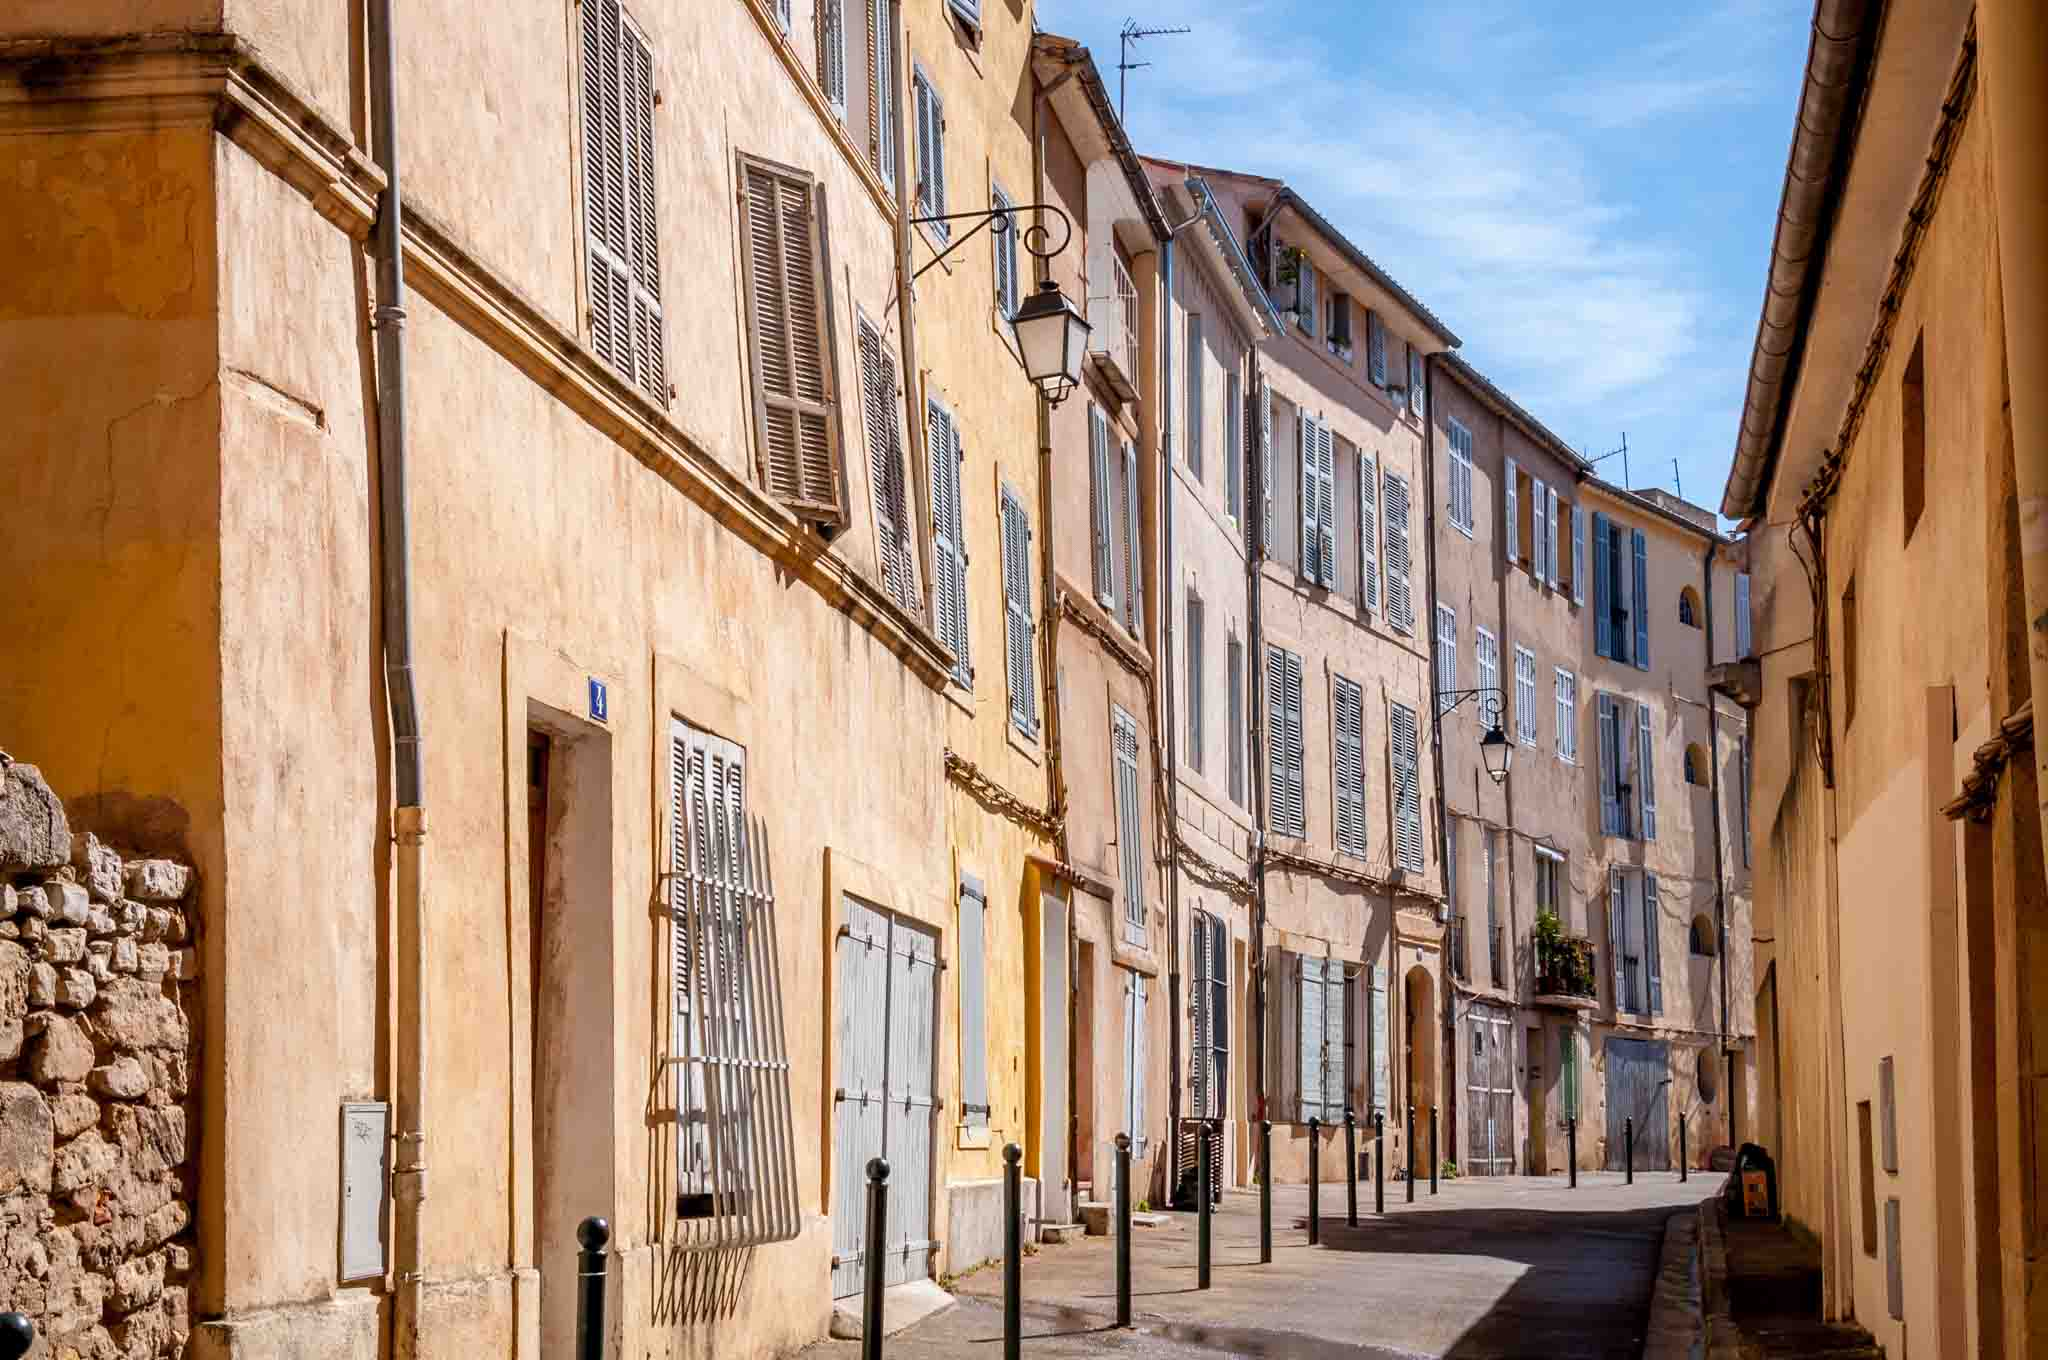 Aix-en-Provence is one of the top towns to visit in the South of France